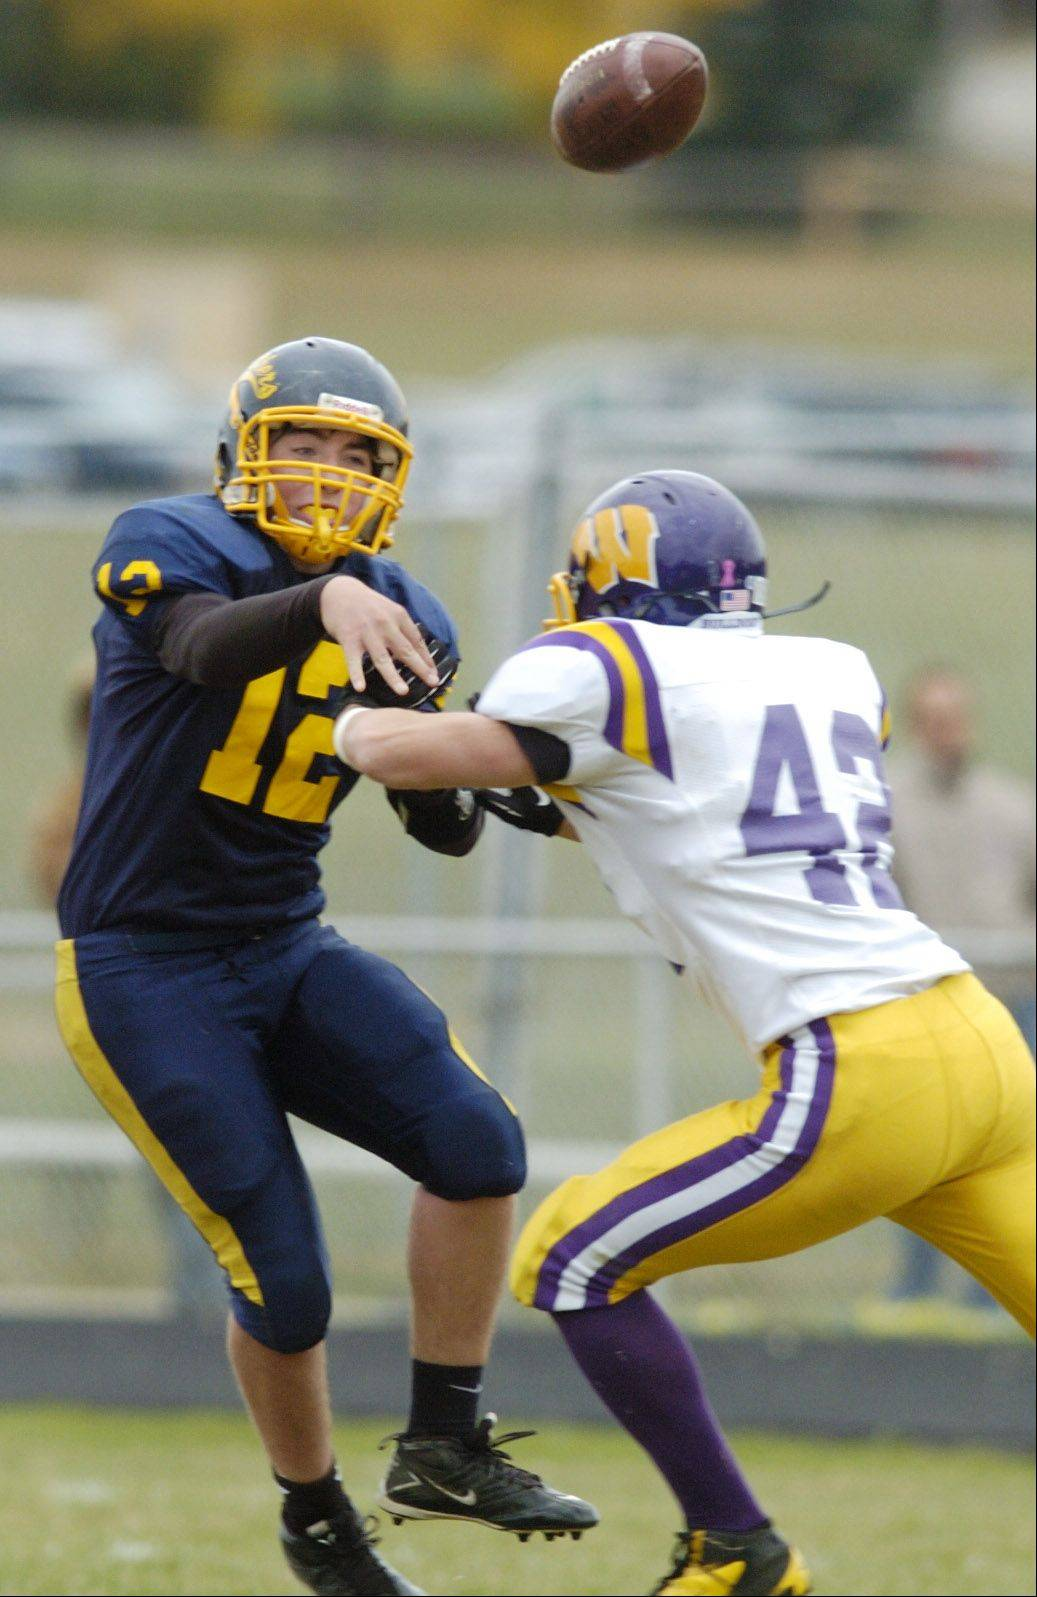 Round Lake quarterback John Ridley releases a pass as Wauconda's Graham Miller closes in during Saturday's game.